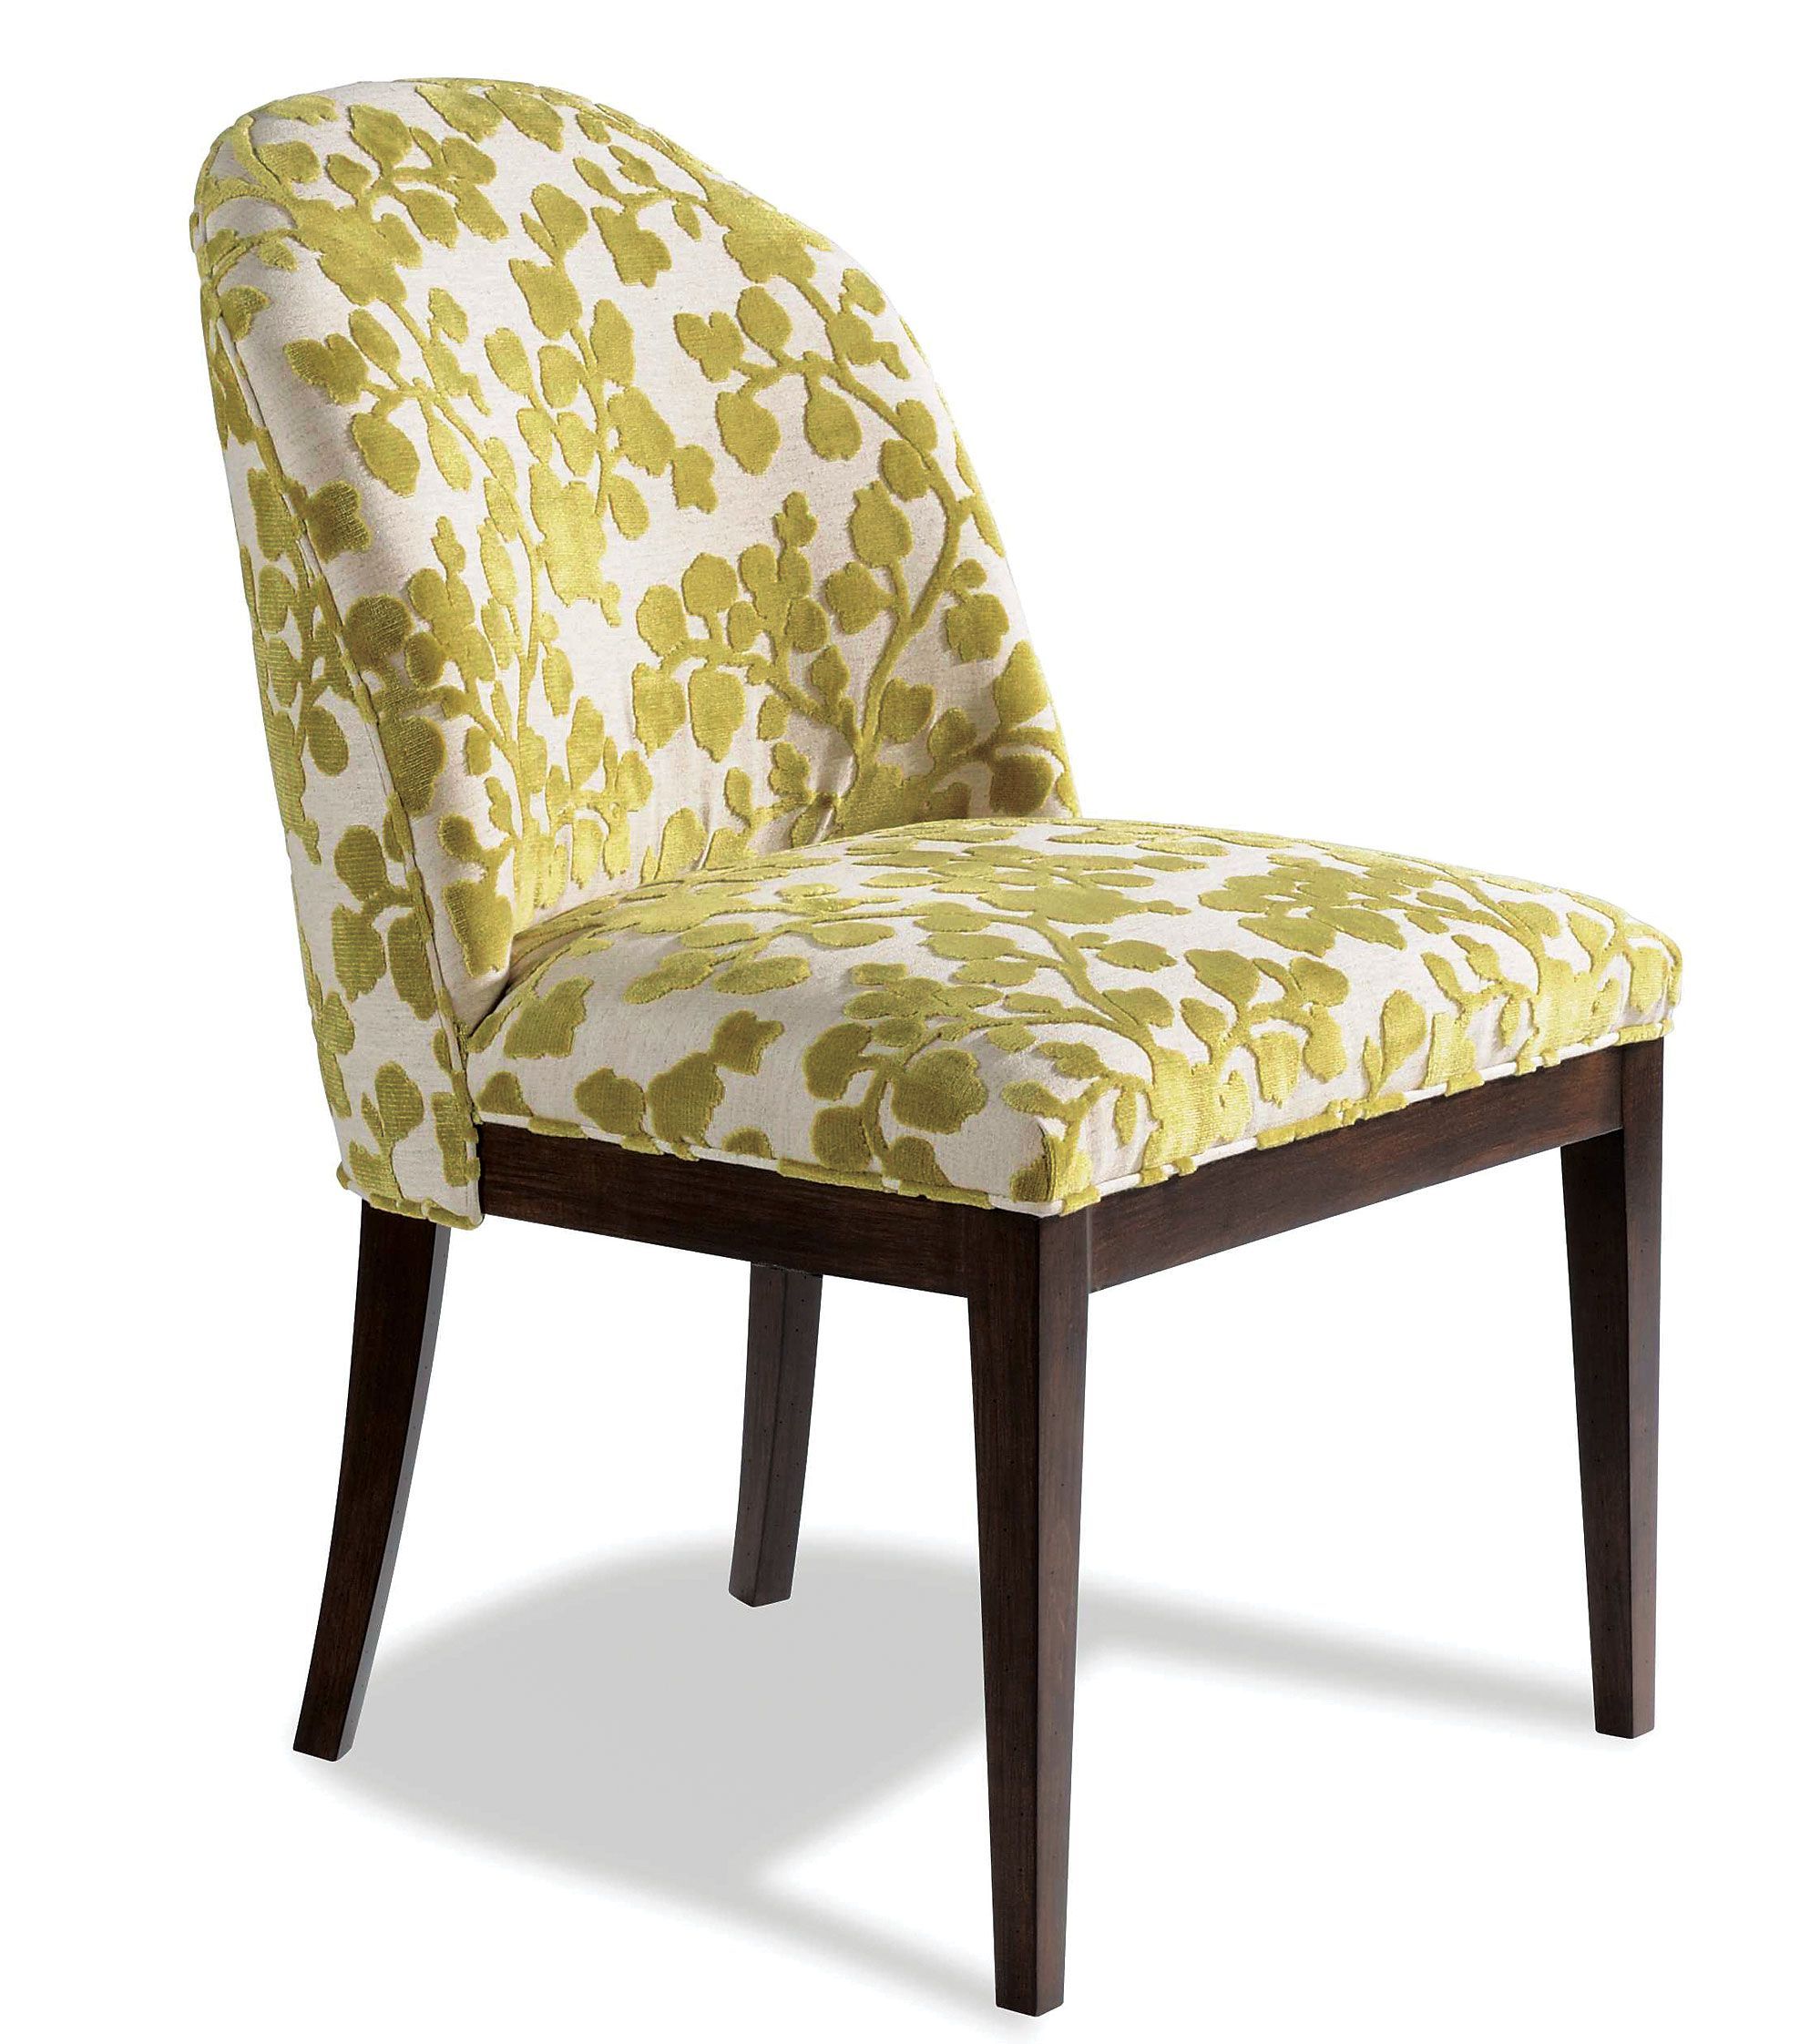 Upholstered in stella peridot taylor kingus dining chair exudes